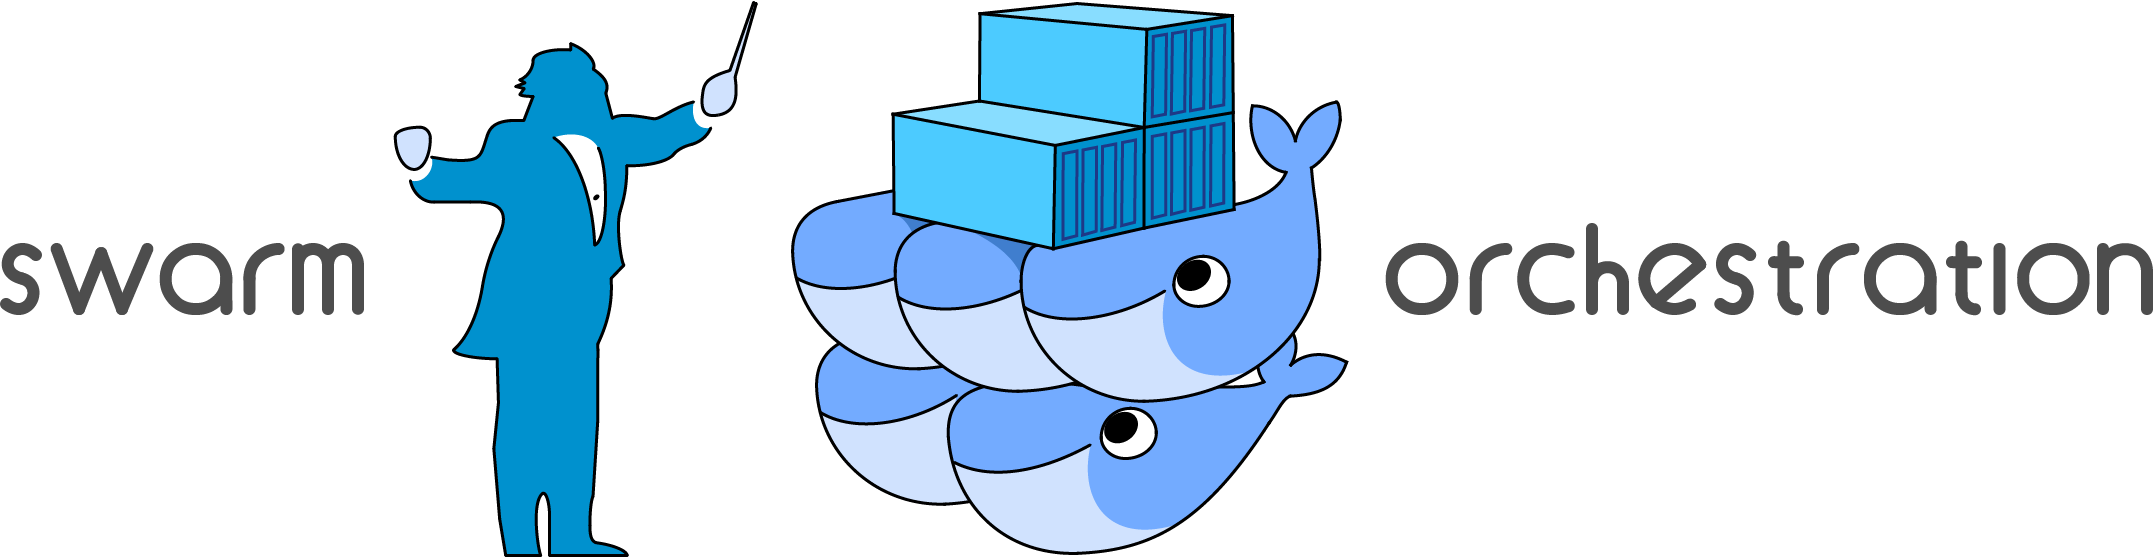 Docker Swarm orchestration